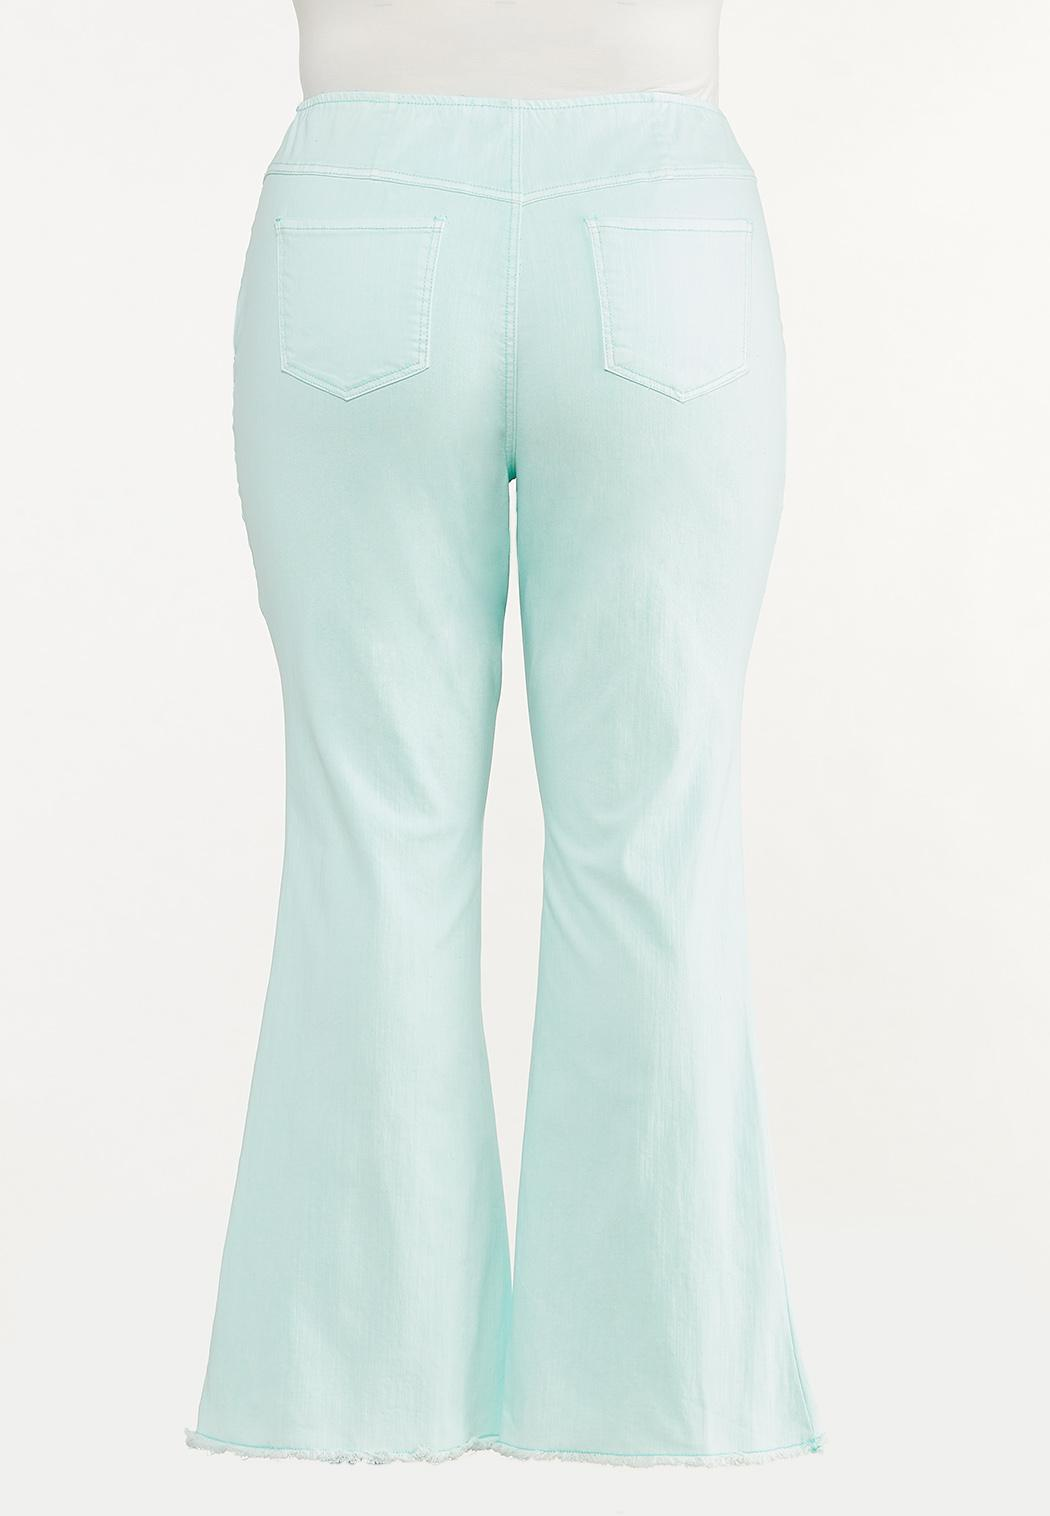 Plus Size Solid Flare Jeans (Item #44575035)